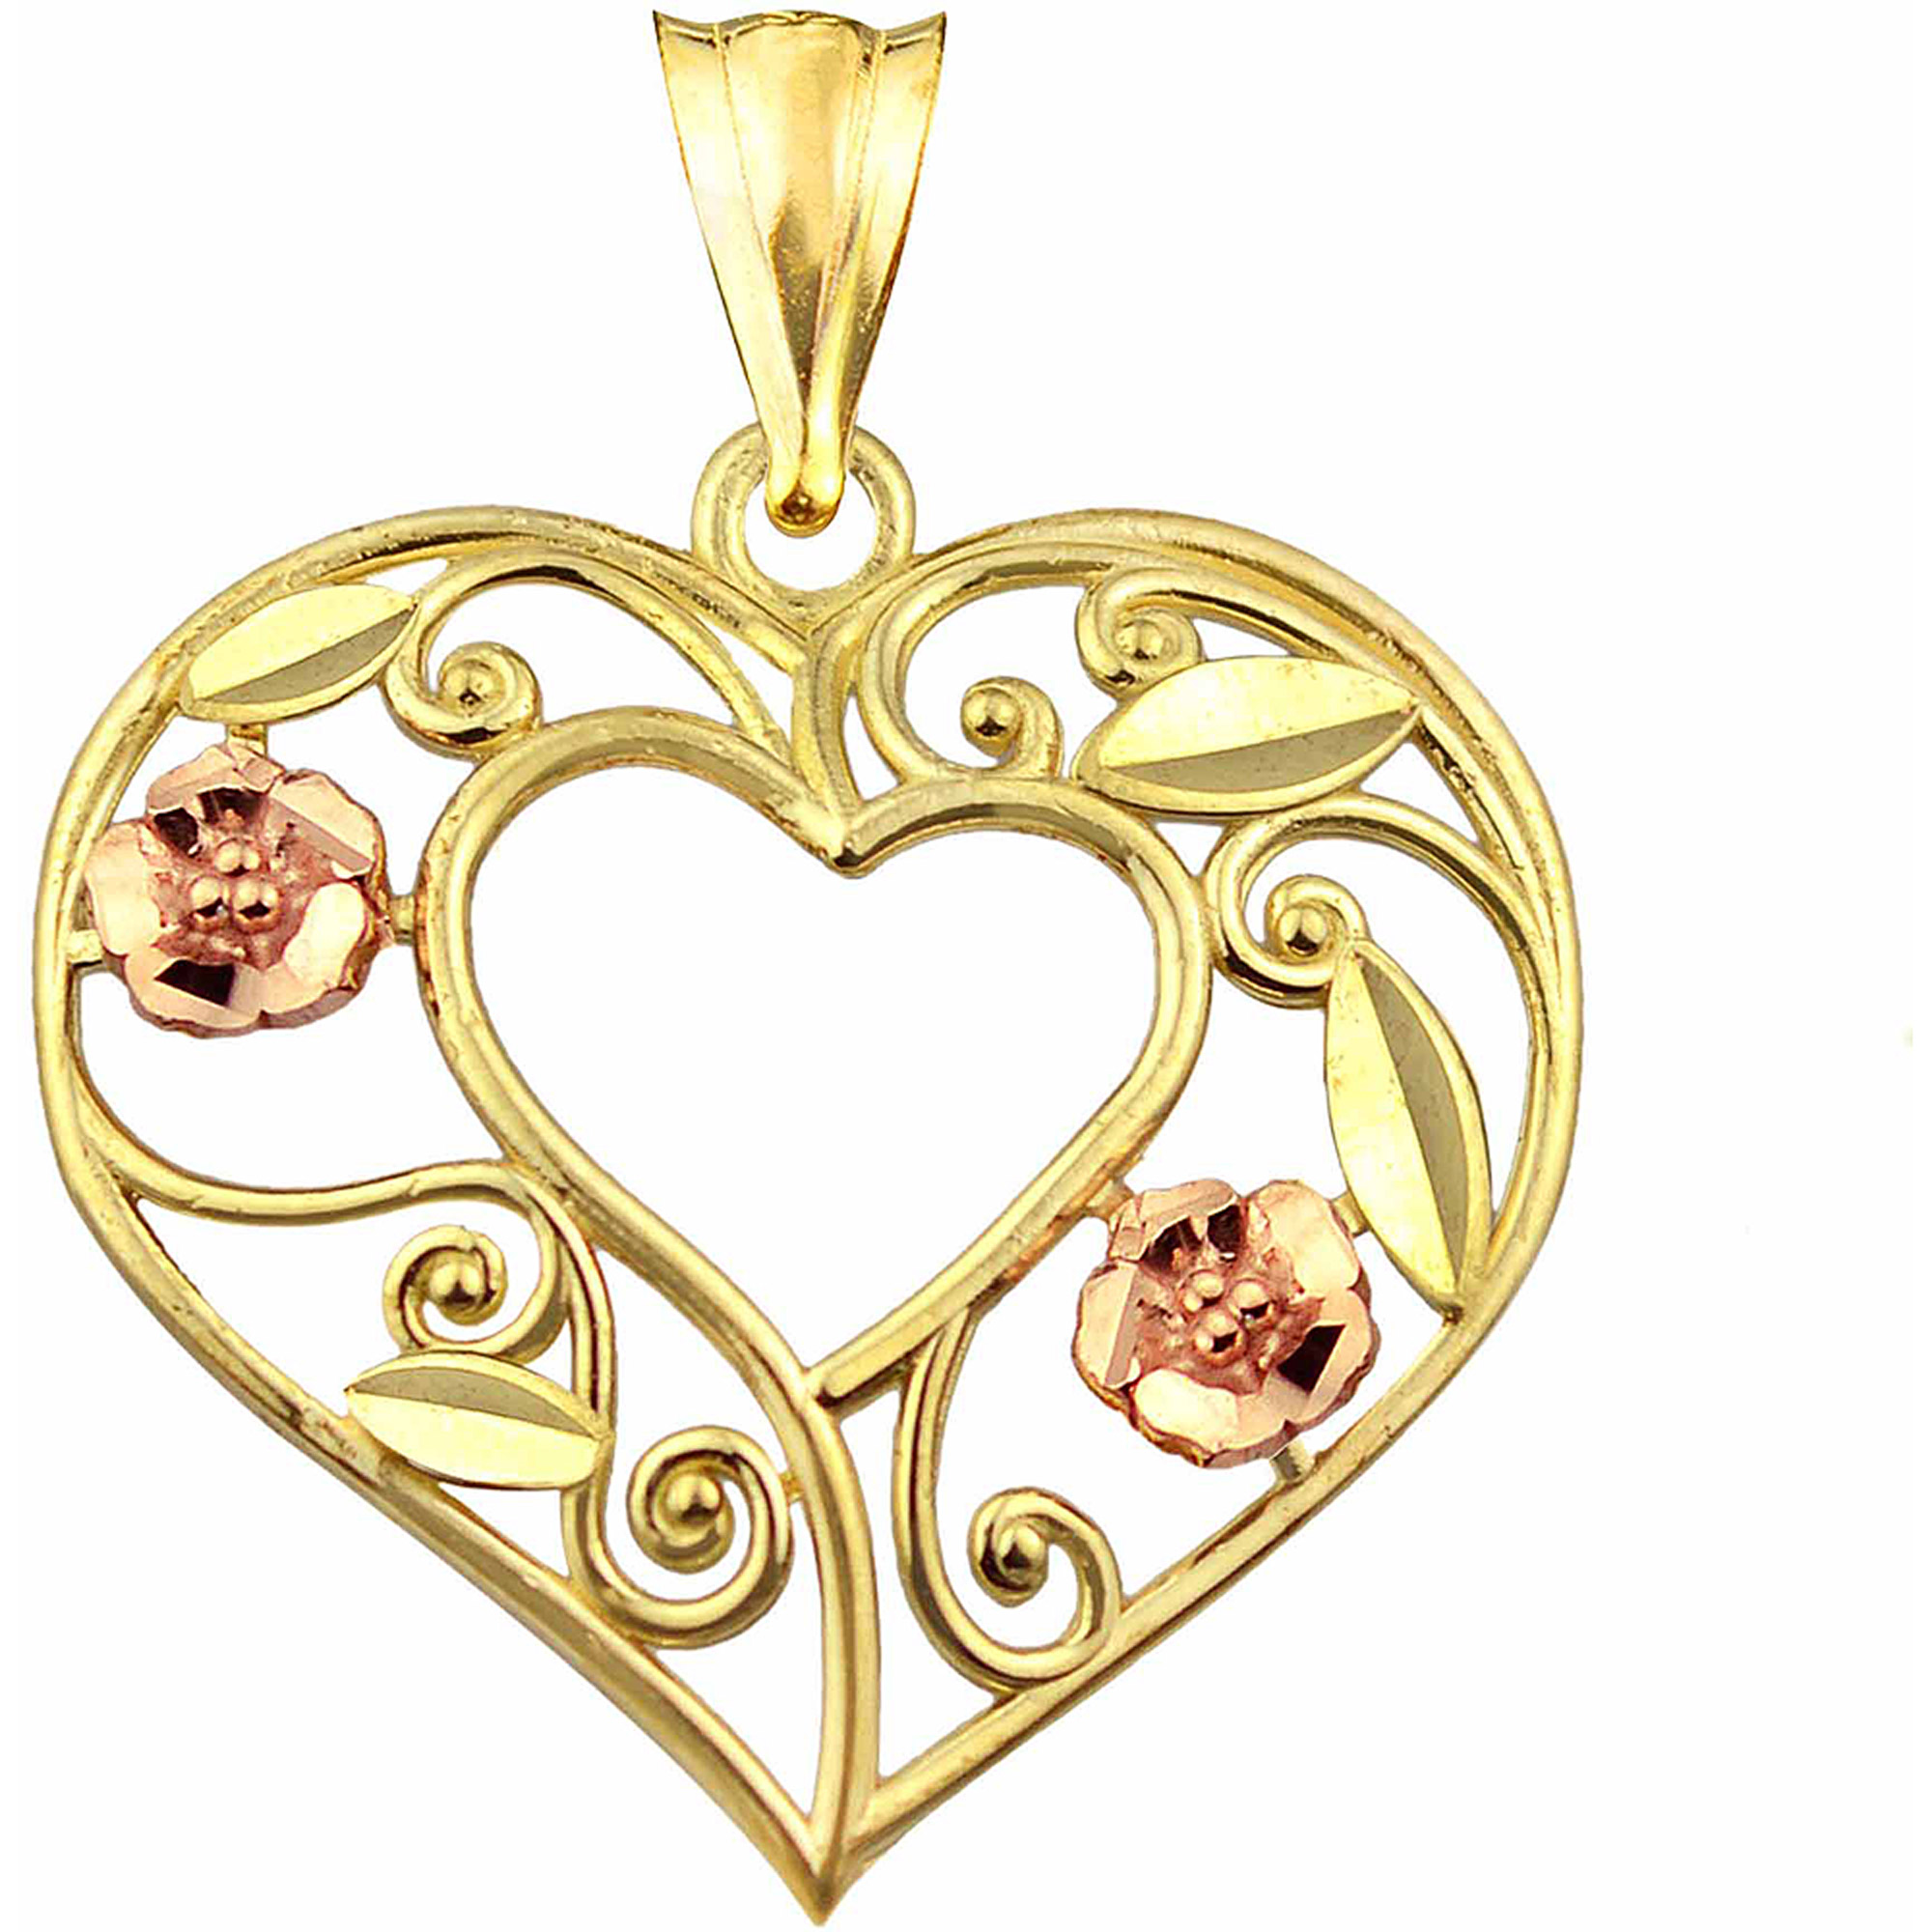 US GOLD 10kt Gold Open Heart with Flowers and Leaves Design Charm Pendant